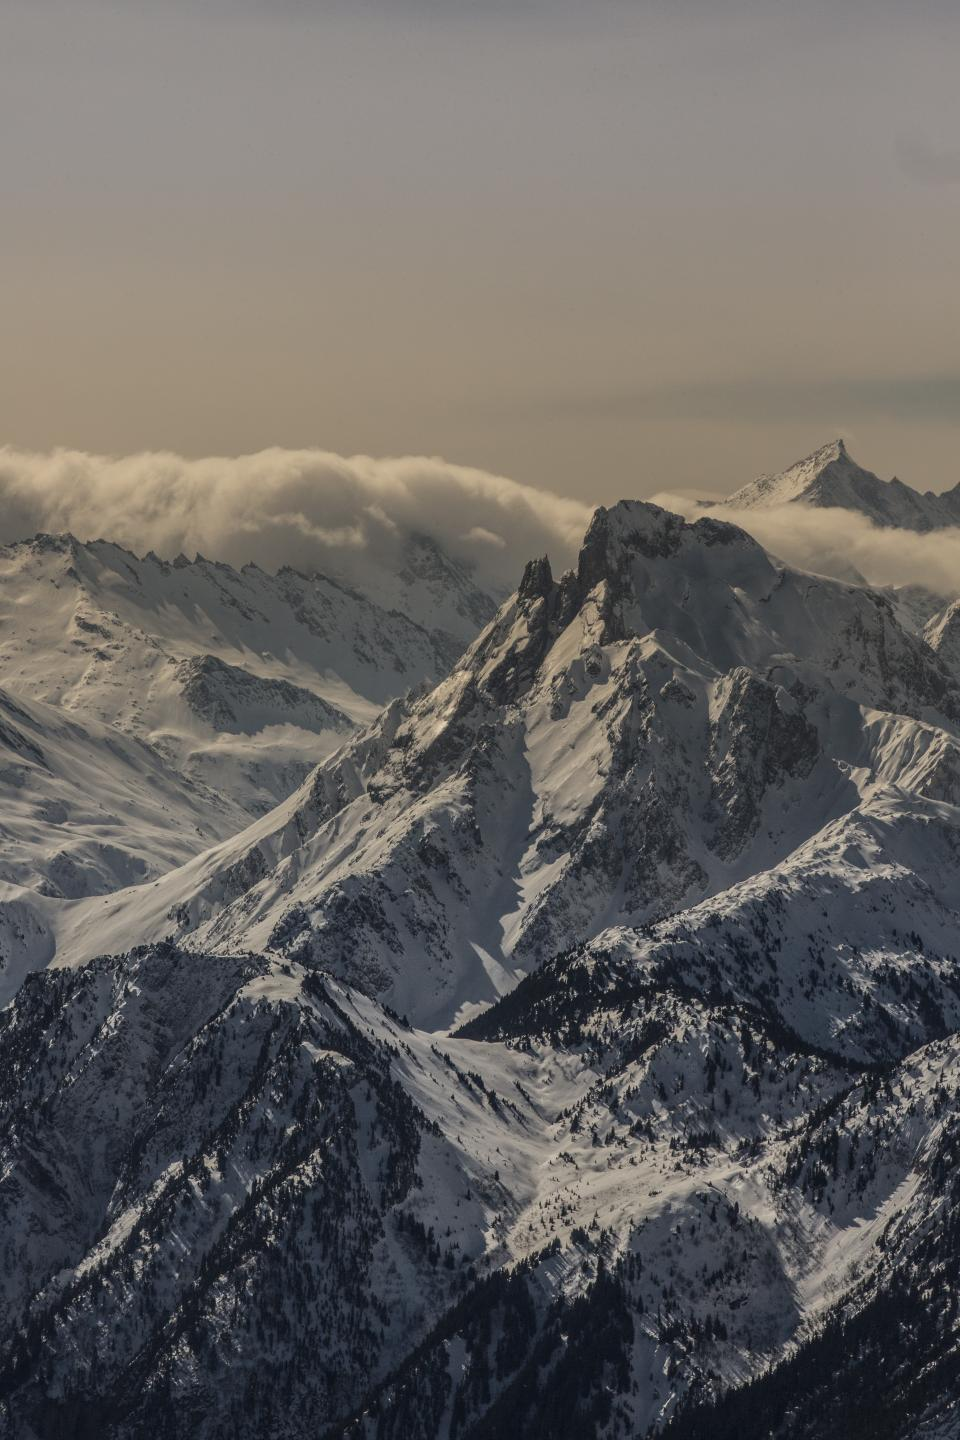 nature landscape mountains summit peaks snow sky horizon clouds blanket rolling texture majestic white